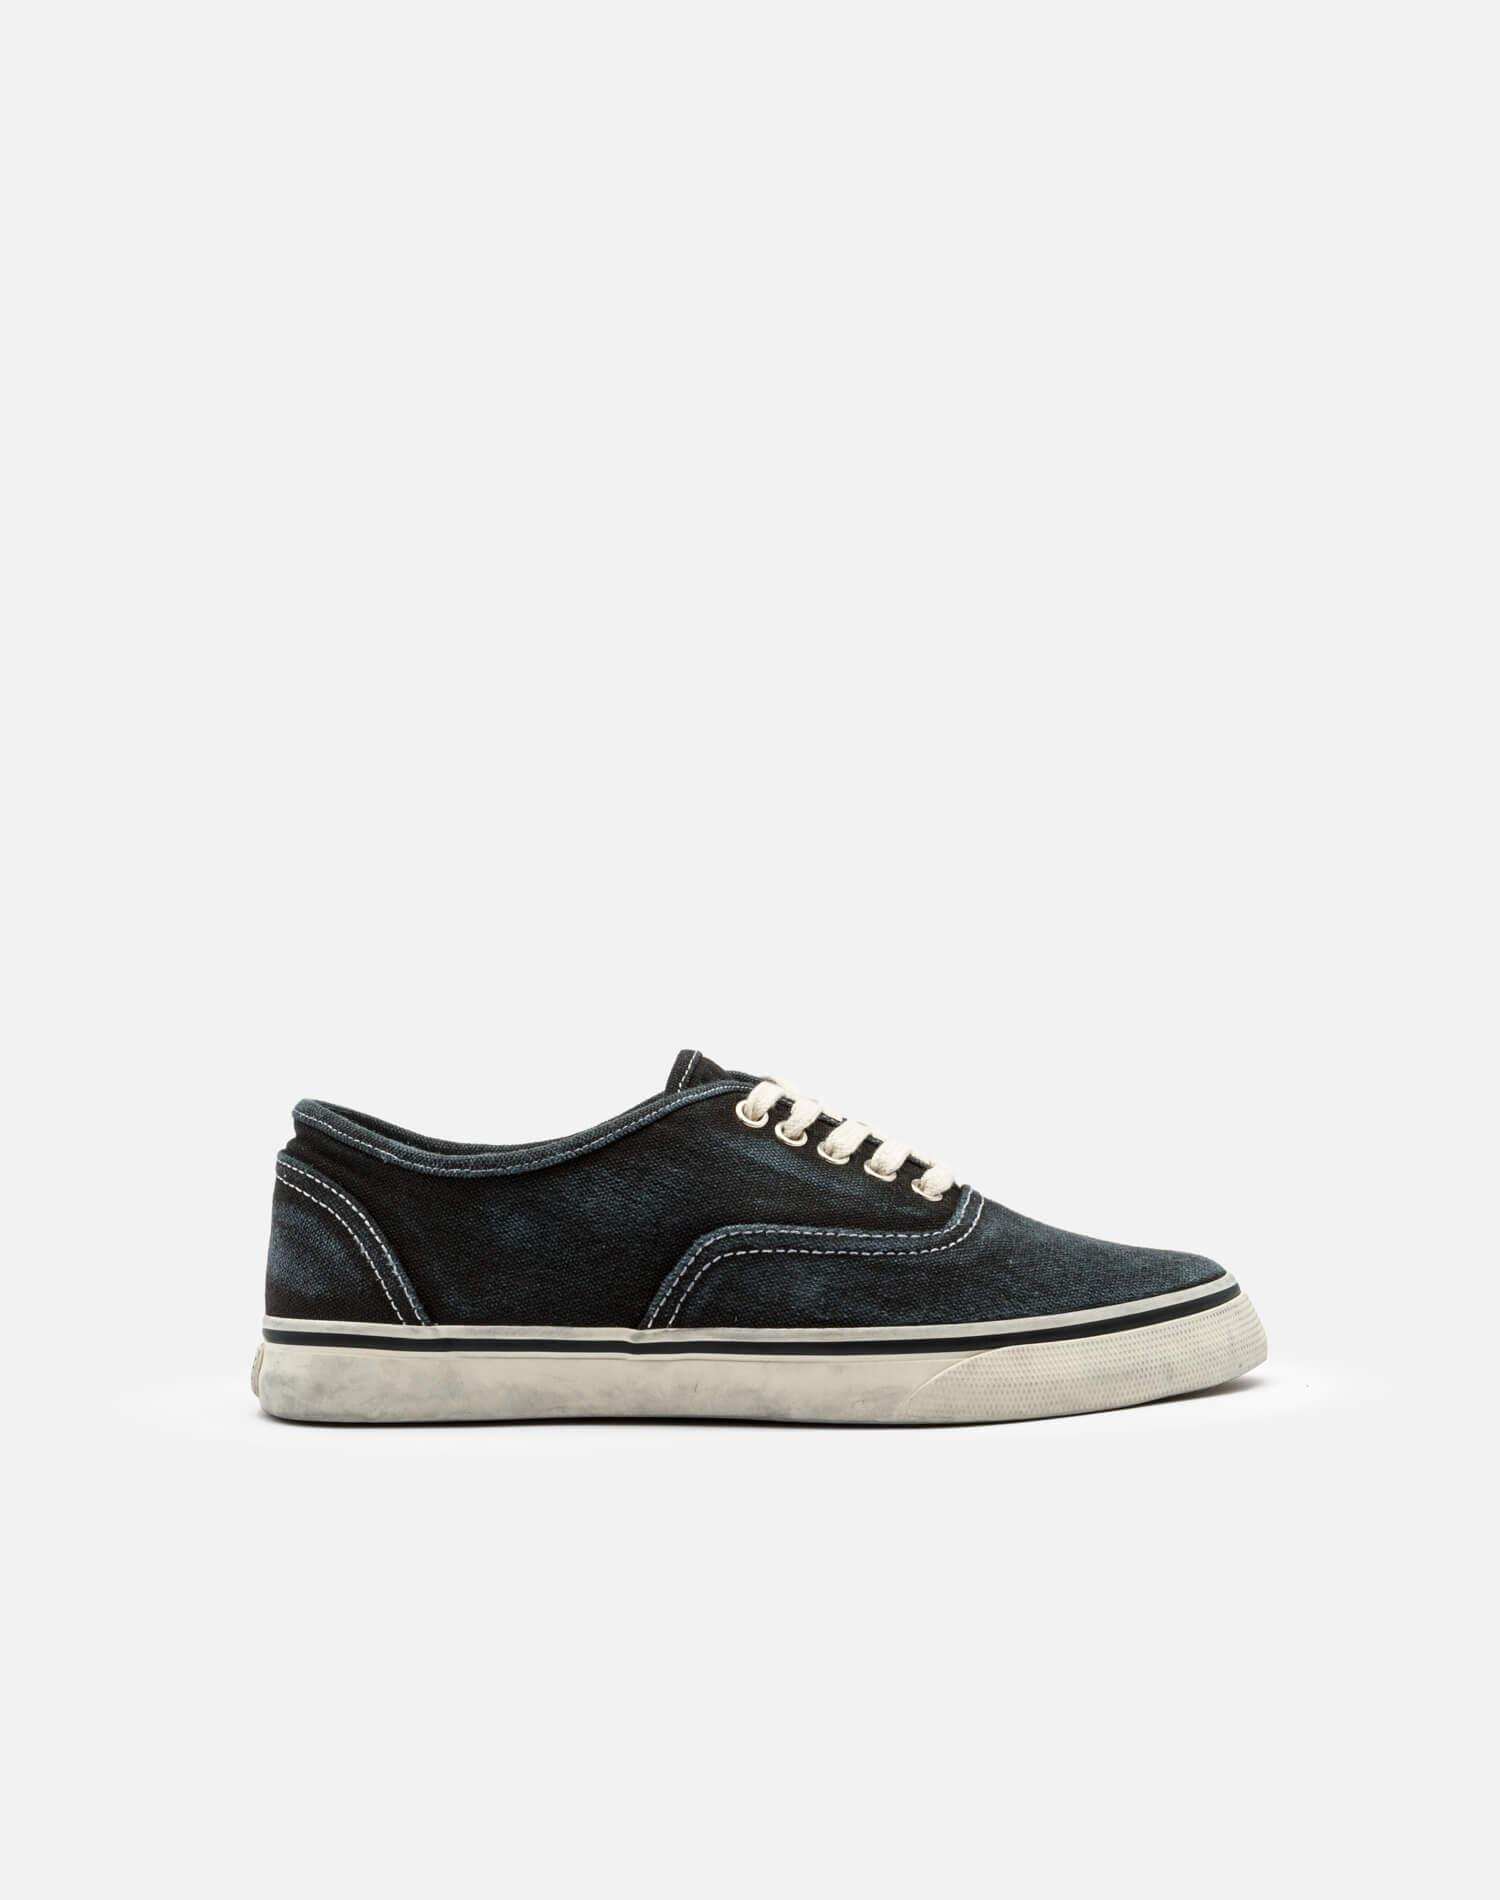 70s Low Top Skate - Faded Black